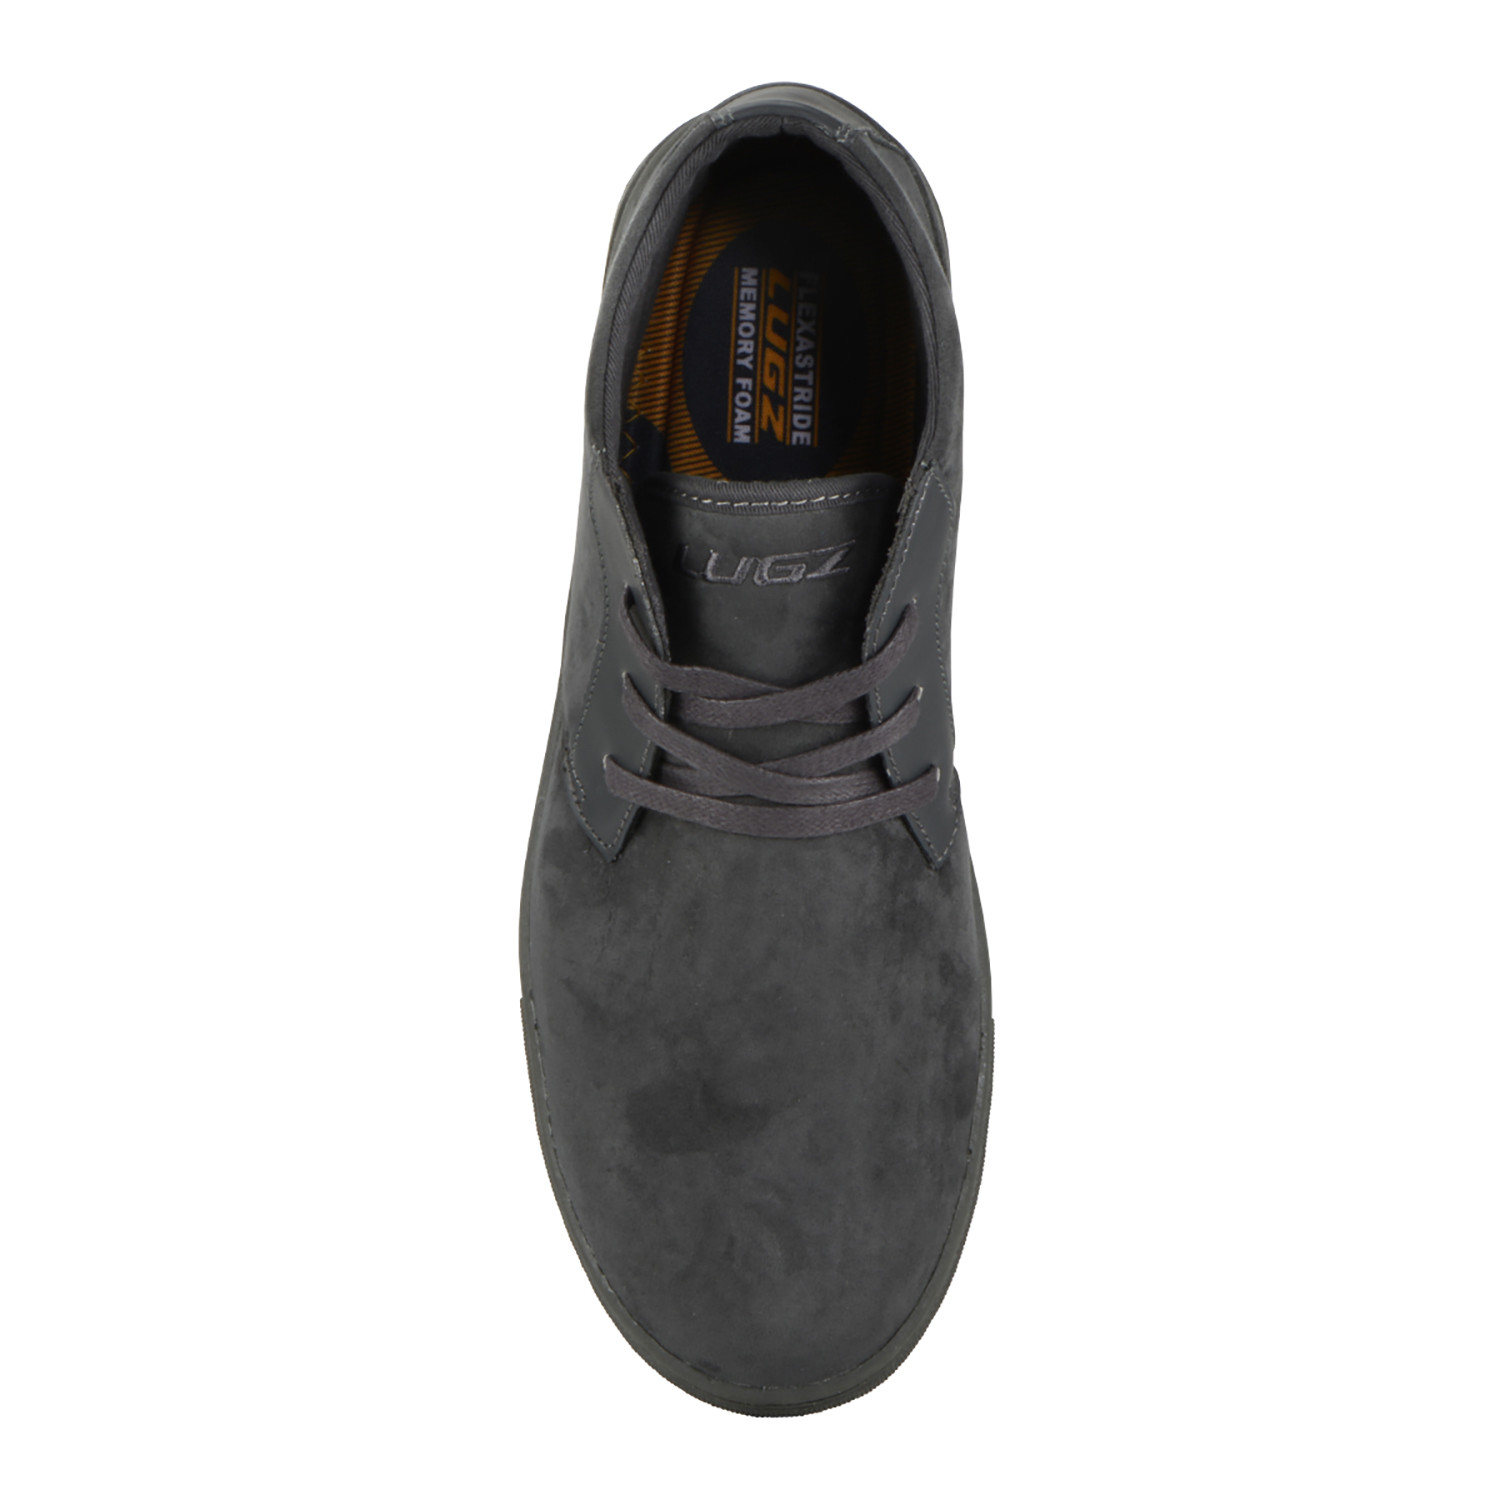 Arbor Mid Sneaker Shadow Grey Us 7 Lugz Touch Of